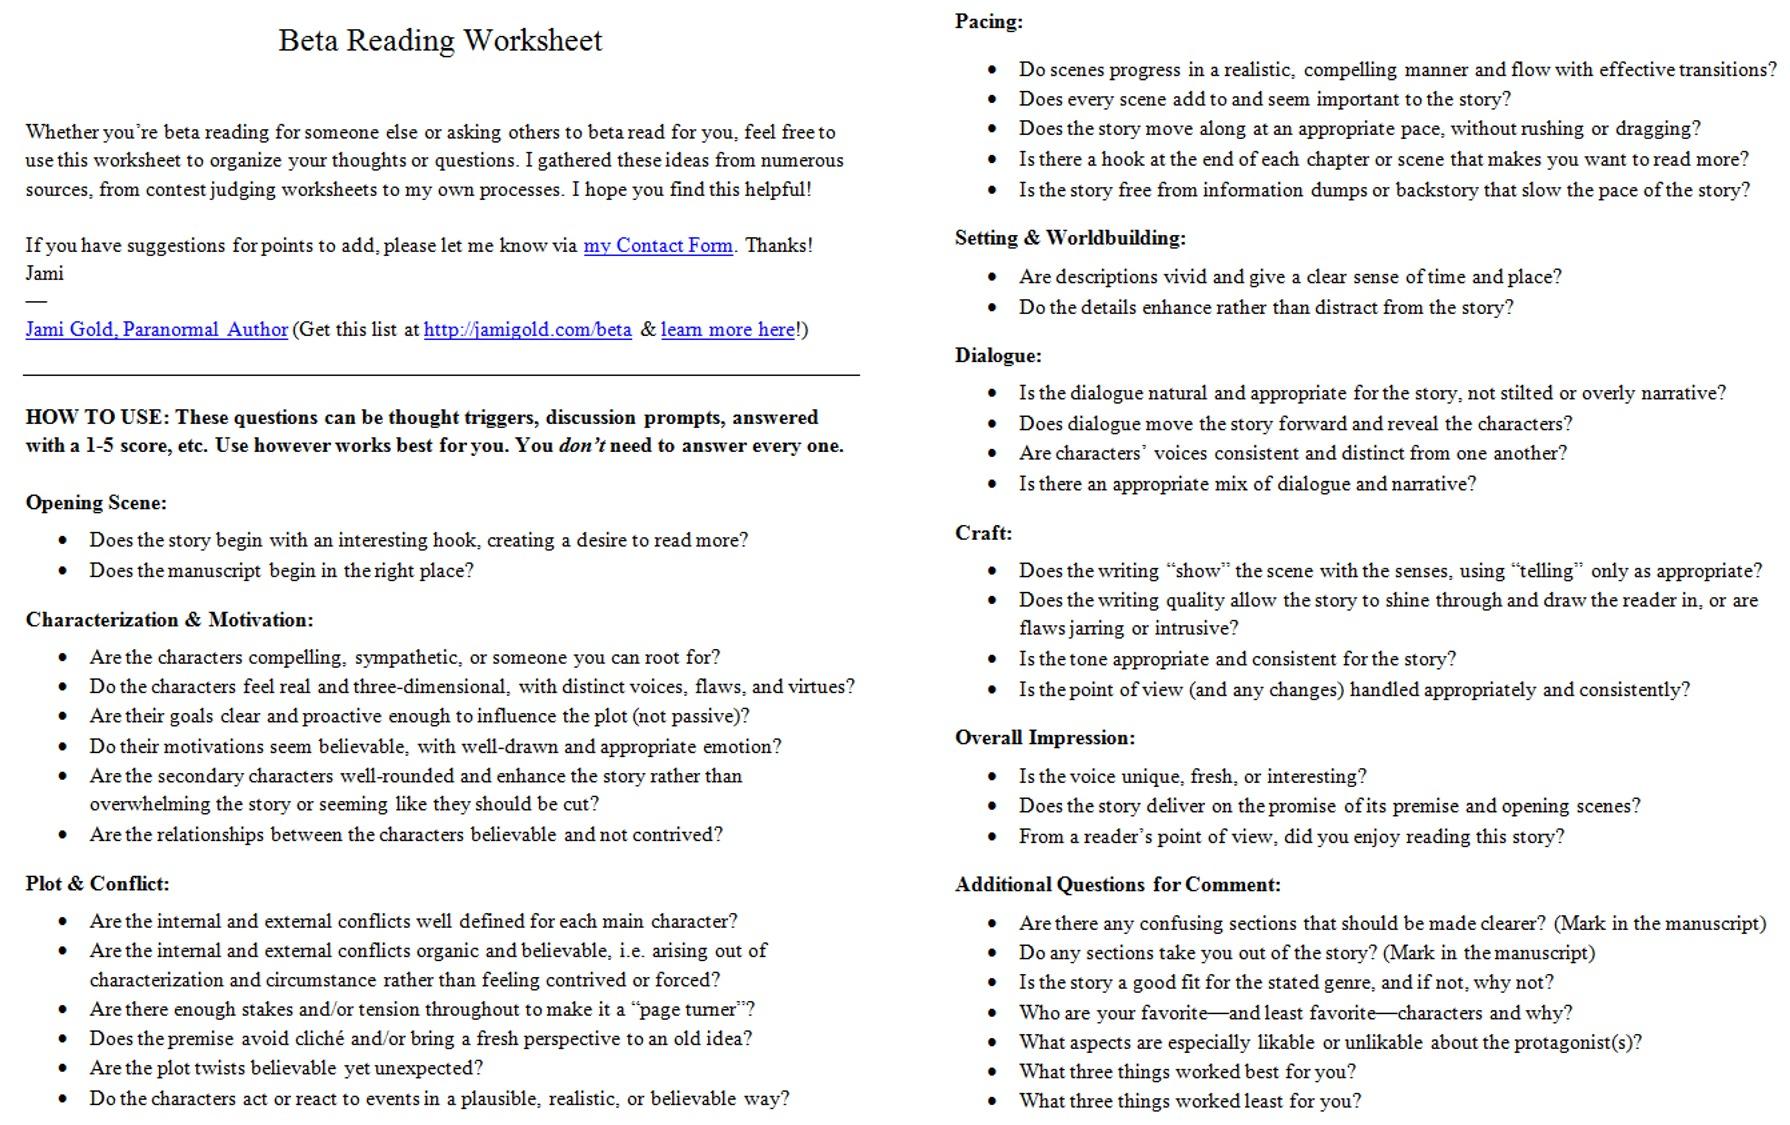 Aldiablosus  Fascinating Worksheets For Writers  Jami Gold Paranormal Author With Fascinating Screen Shot Of The Twopage Beta Reading Worksheet With Lovely Algebra Review Worksheets Also Percent Problems Worksheet In Addition Body Systems Matching Worksheet And  Grade Worksheets As Well As Nutrient Cycles Worksheet Additionally Smart Recovery Worksheets From Jamigoldcom With Aldiablosus  Fascinating Worksheets For Writers  Jami Gold Paranormal Author With Lovely Screen Shot Of The Twopage Beta Reading Worksheet And Fascinating Algebra Review Worksheets Also Percent Problems Worksheet In Addition Body Systems Matching Worksheet From Jamigoldcom